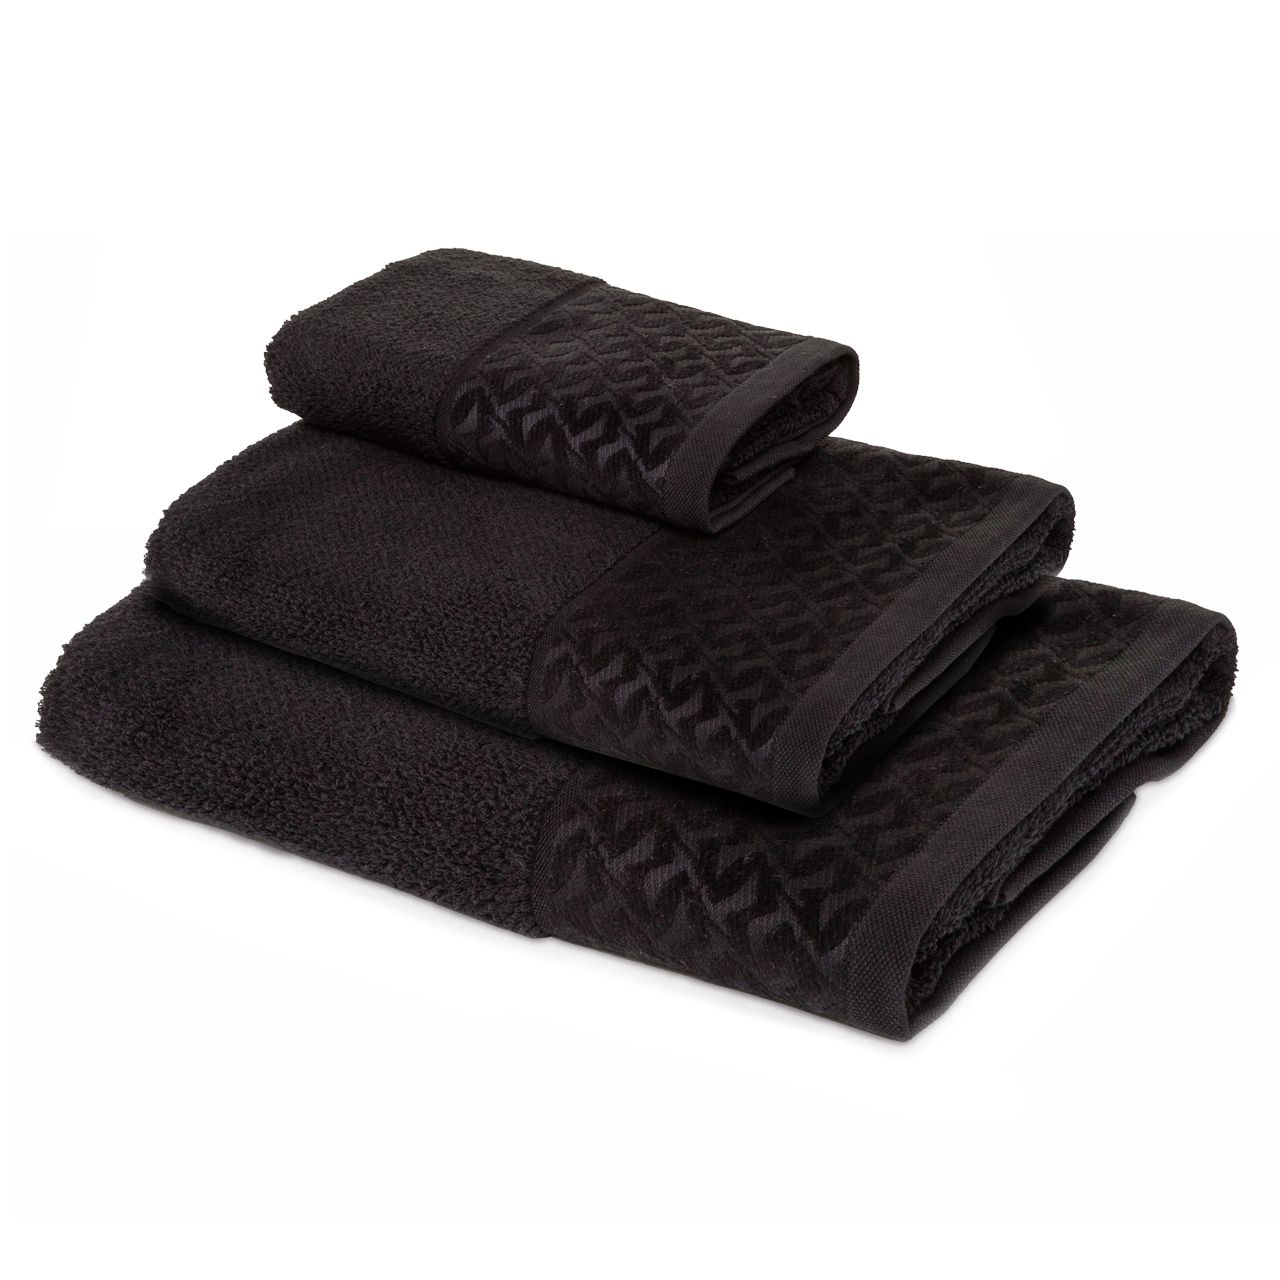 Seagull/Cheneille Border Towel in Black